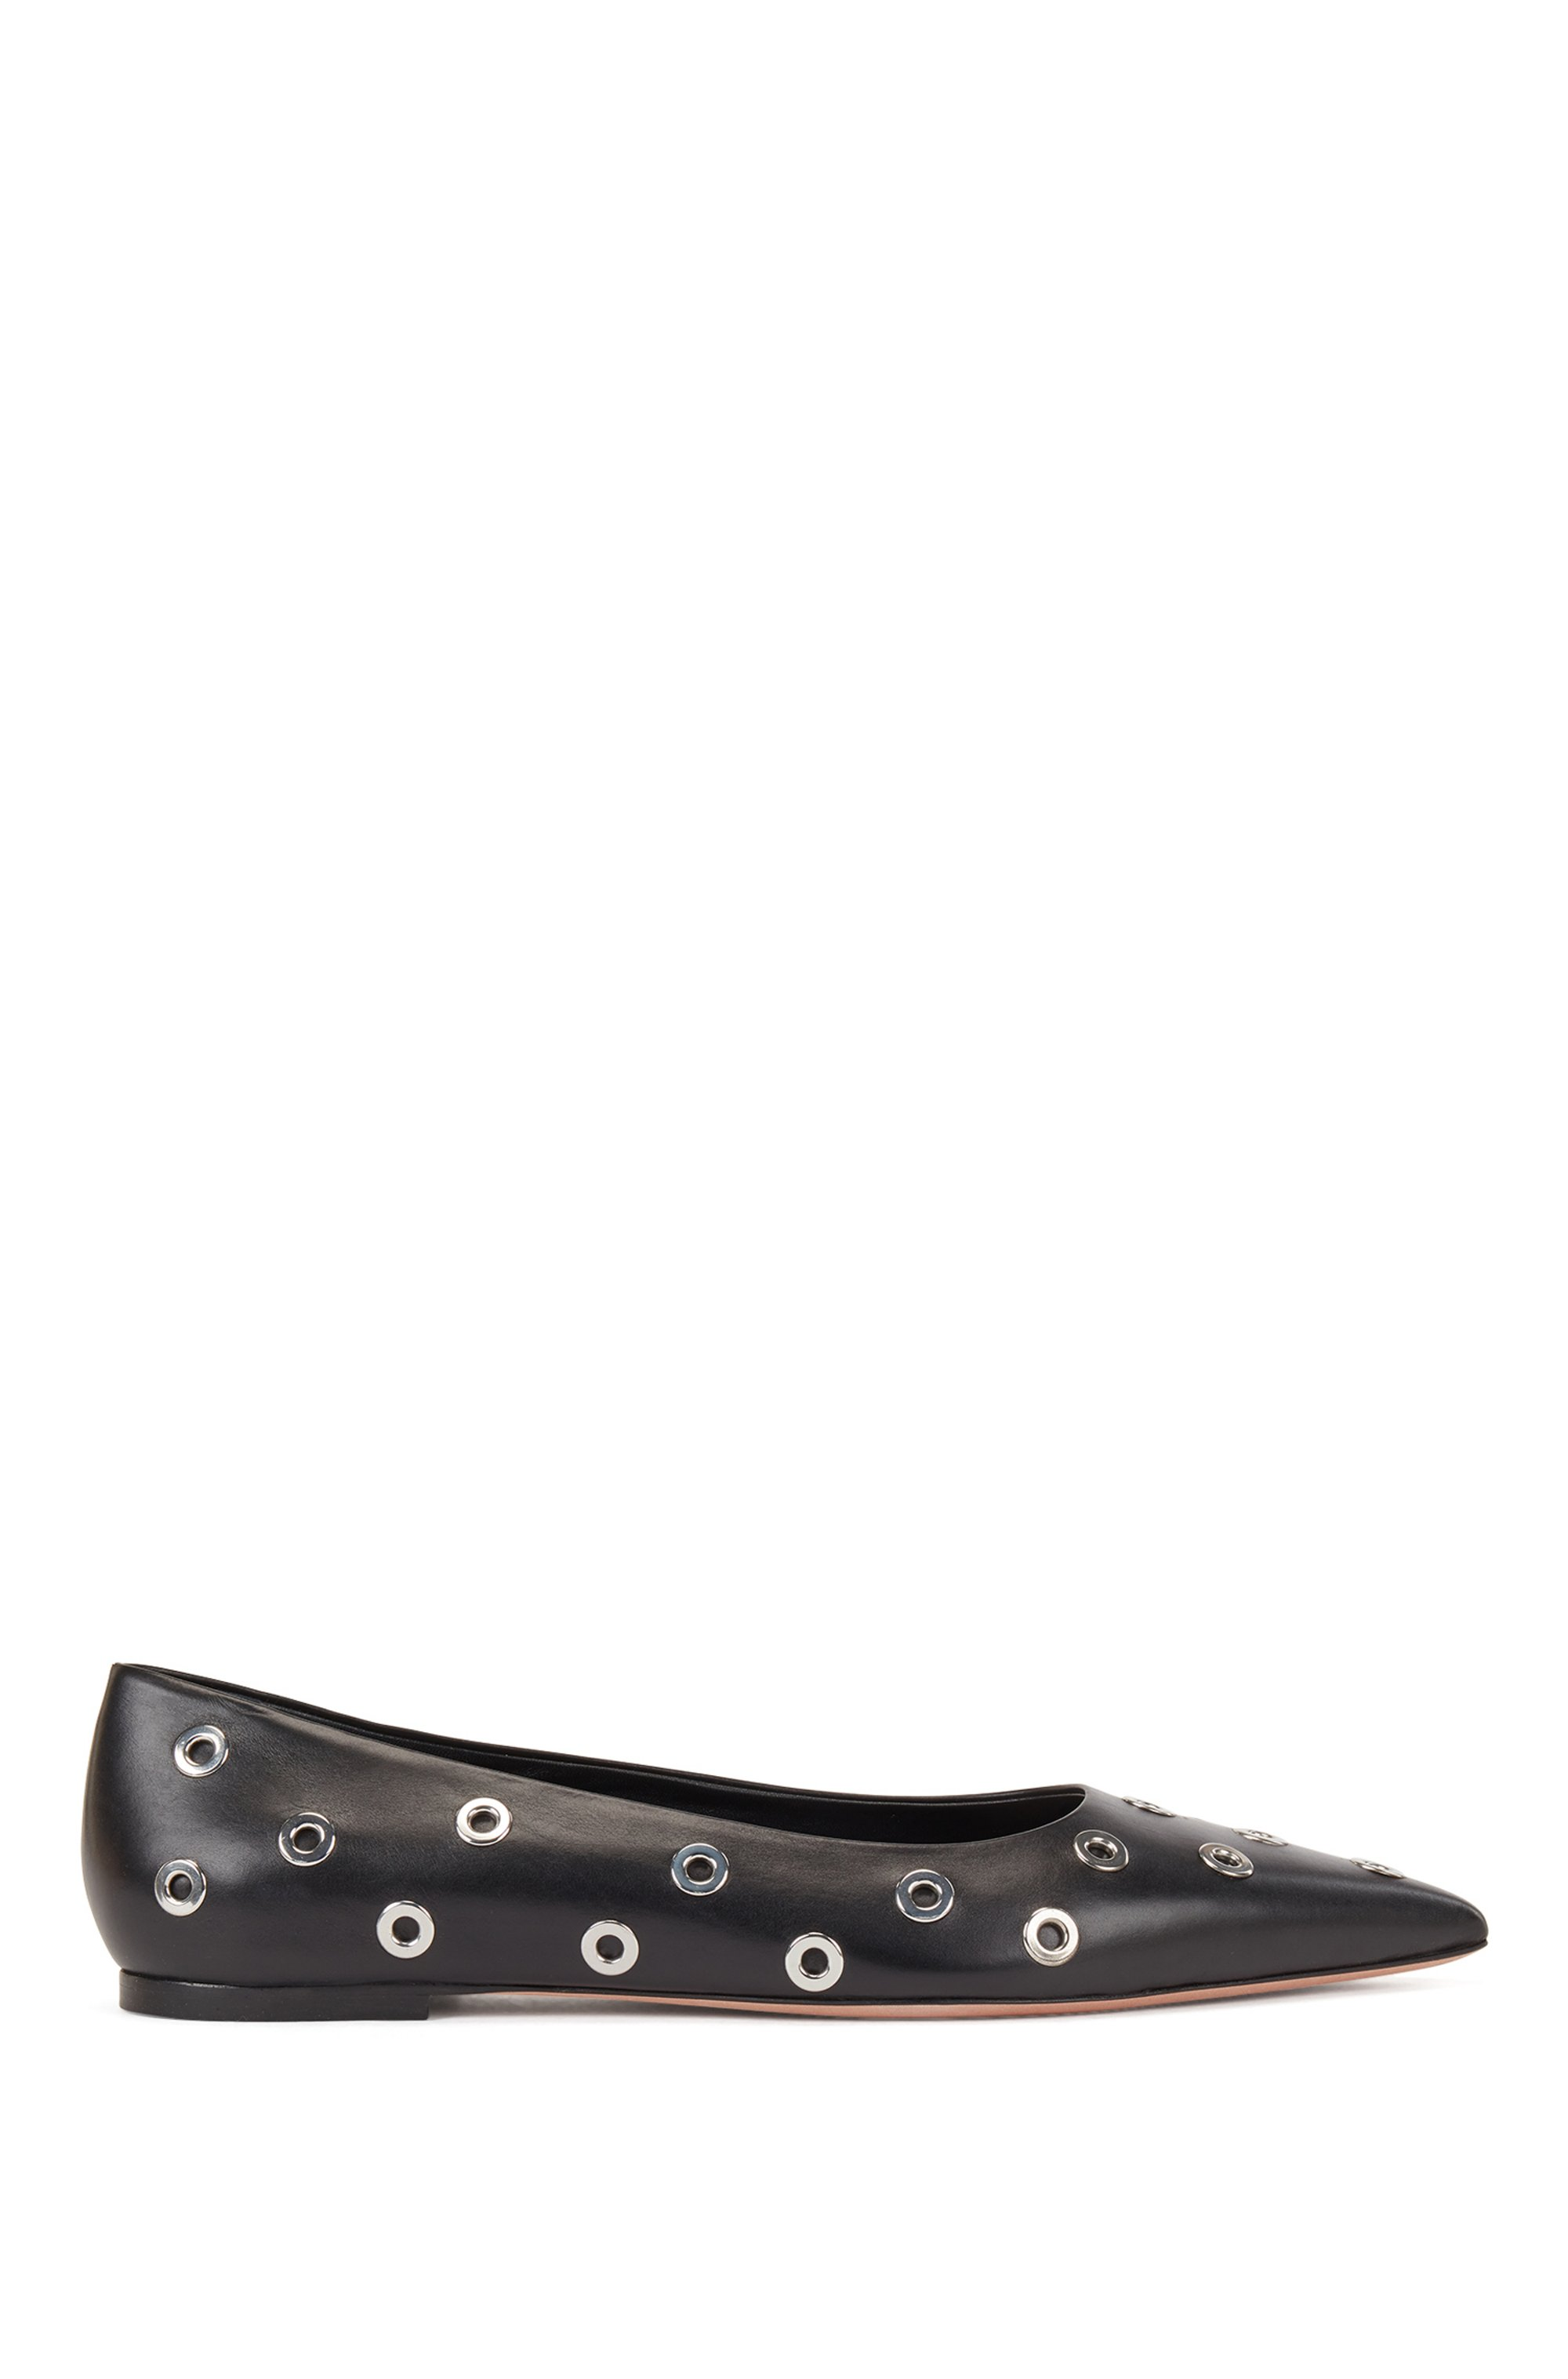 Italian-leather ballerina pumps with metallic eyelets, Black